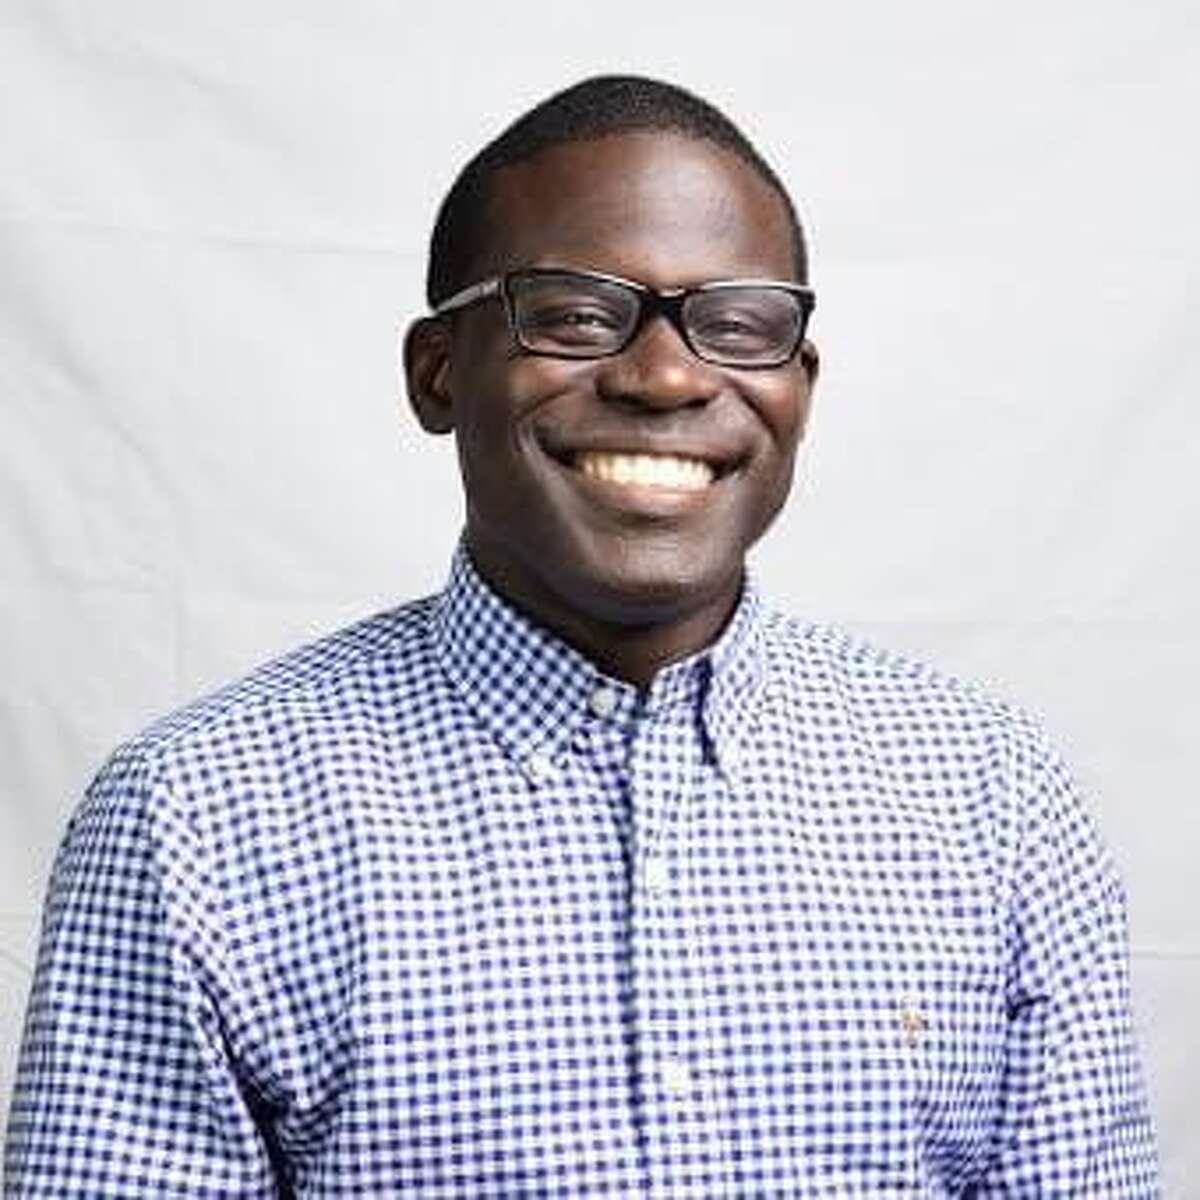 Keep scrolling for 20 things you don't know about Albany Common Council member Owusu Anane. Read more and comment on Kristi's blog.